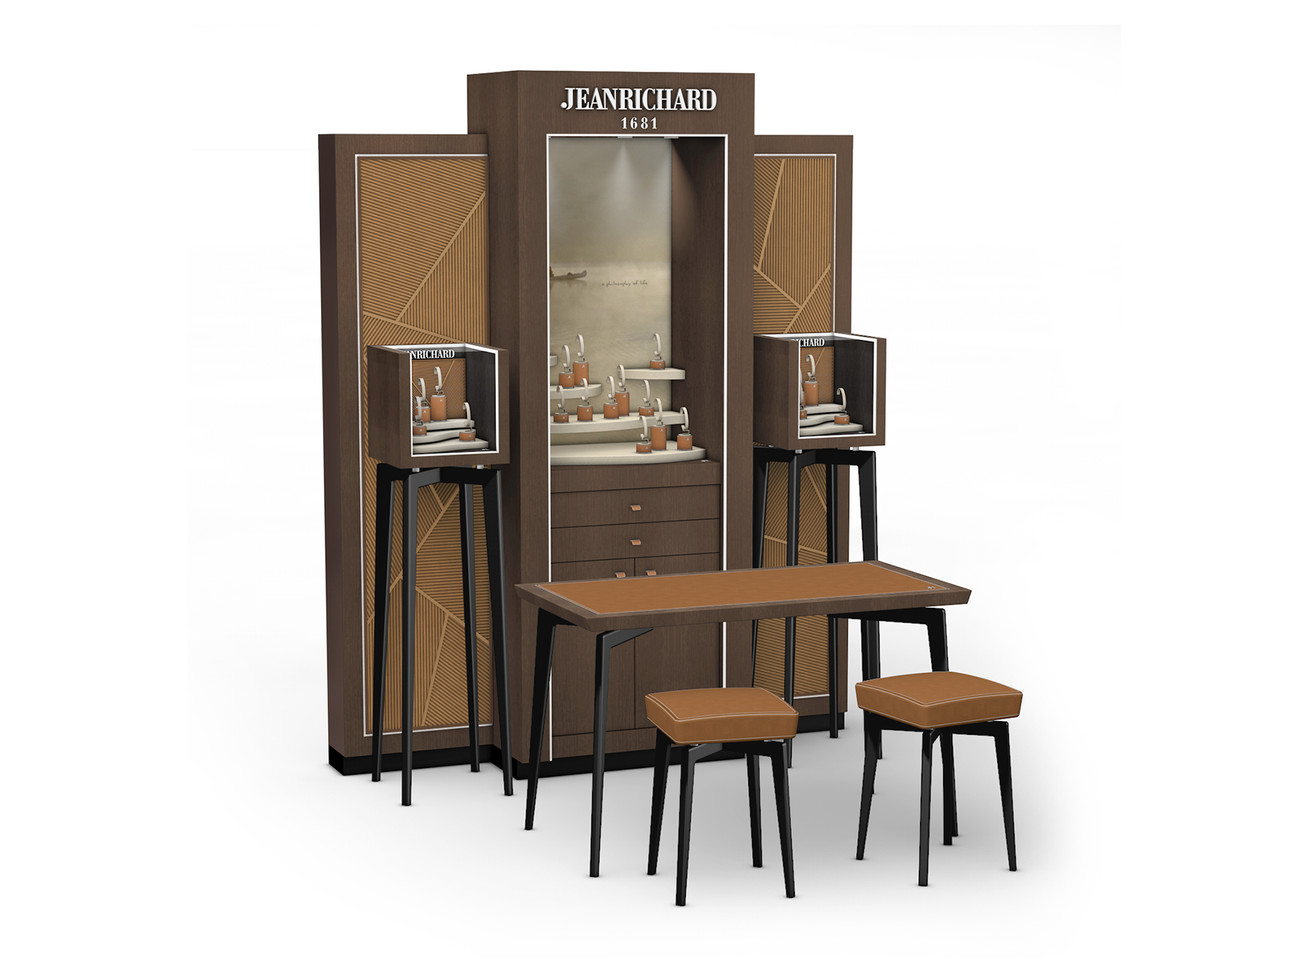 Corner Concept Furniture - Composition with Backwall, Showcases and Sales table